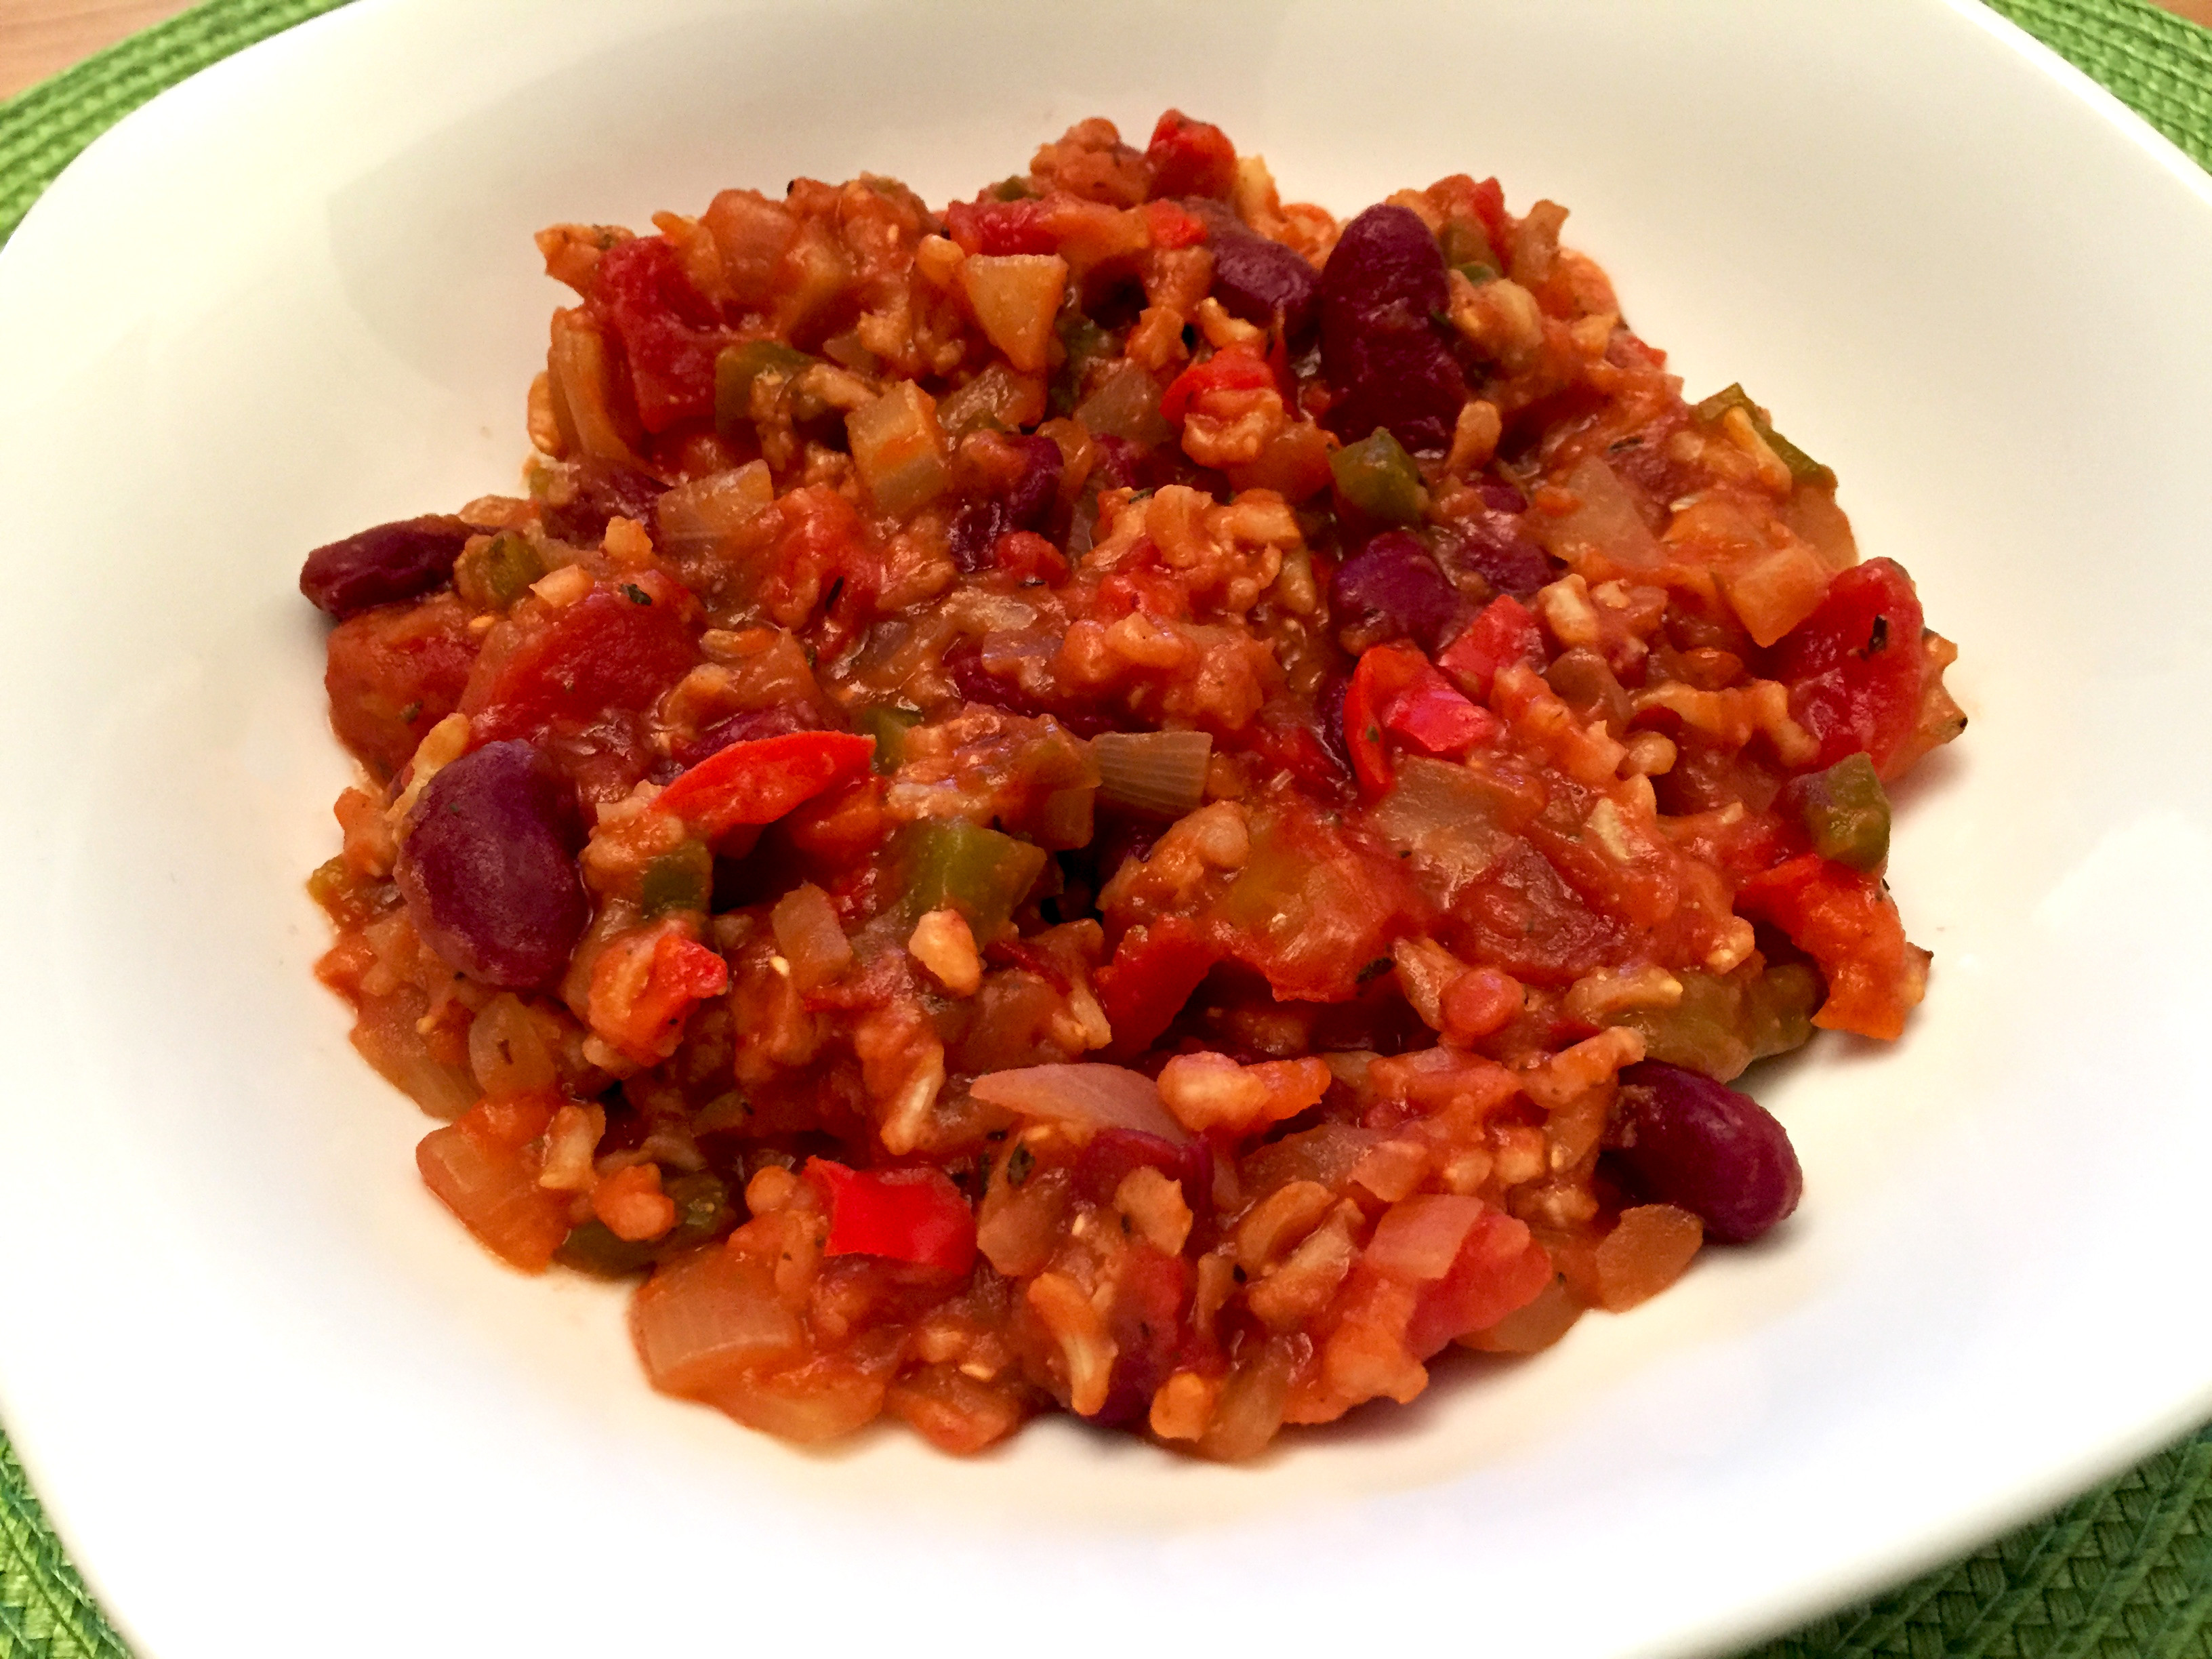 Is Rice And Beans Healthy  Healthy Red Beans and Rice Colorful & Delicious Creole